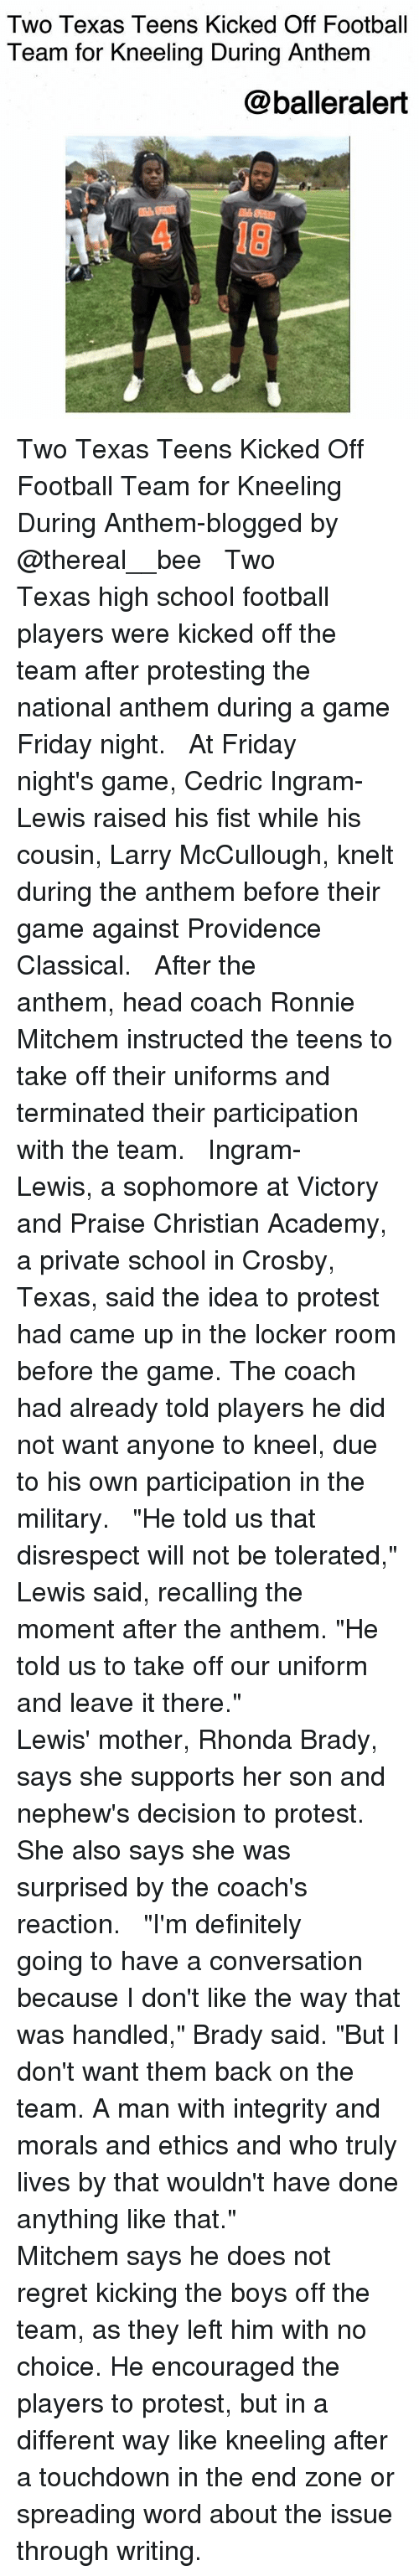 "Definitely, Football, and Friday: Two Texas Teens Kicked Off Football  Team for Kneeling During Anthem  @balleralert  4 18 Two Texas Teens Kicked Off Football Team for Kneeling During Anthem-blogged by @thereal__bee ⠀⠀⠀⠀⠀⠀⠀⠀⠀ ⠀⠀ Two Texas high school football players were kicked off the team after protesting the national anthem during a game Friday night. ⠀⠀⠀⠀⠀⠀⠀⠀⠀ ⠀⠀ At Friday night's game, Cedric Ingram-Lewis raised his fist while his cousin, Larry McCullough, knelt during the anthem before their game against Providence Classical. ⠀⠀⠀⠀⠀⠀⠀⠀⠀ ⠀⠀ After the anthem, head coach Ronnie Mitchem instructed the teens to take off their uniforms and terminated their participation with the team. ⠀⠀⠀⠀⠀⠀⠀⠀⠀ ⠀⠀ Ingram-Lewis, a sophomore at Victory and Praise Christian Academy, a private school in Crosby, Texas, said the idea to protest had came up in the locker room before the game. The coach had already told players he did not want anyone to kneel, due to his own participation in the military. ⠀⠀⠀⠀⠀⠀⠀⠀⠀ ⠀⠀ ""He told us that disrespect will not be tolerated,"" Lewis said, recalling the moment after the anthem. ""He told us to take off our uniform and leave it there."" ⠀⠀⠀⠀⠀⠀⠀⠀⠀ ⠀⠀ Lewis' mother, Rhonda Brady, says she supports her son and nephew's decision to protest. She also says she was surprised by the coach's reaction. ⠀⠀⠀⠀⠀⠀⠀⠀⠀ ⠀⠀ ""I'm definitely going to have a conversation because I don't like the way that was handled,"" Brady said. ""But I don't want them back on the team. A man with integrity and morals and ethics and who truly lives by that wouldn't have done anything like that."" ⠀⠀⠀⠀⠀⠀⠀⠀⠀ ⠀⠀ Mitchem says he does not regret kicking the boys off the team, as they left him with no choice. He encouraged the players to protest, but in a different way like kneeling after a touchdown in the end zone or spreading word about the issue through writing."